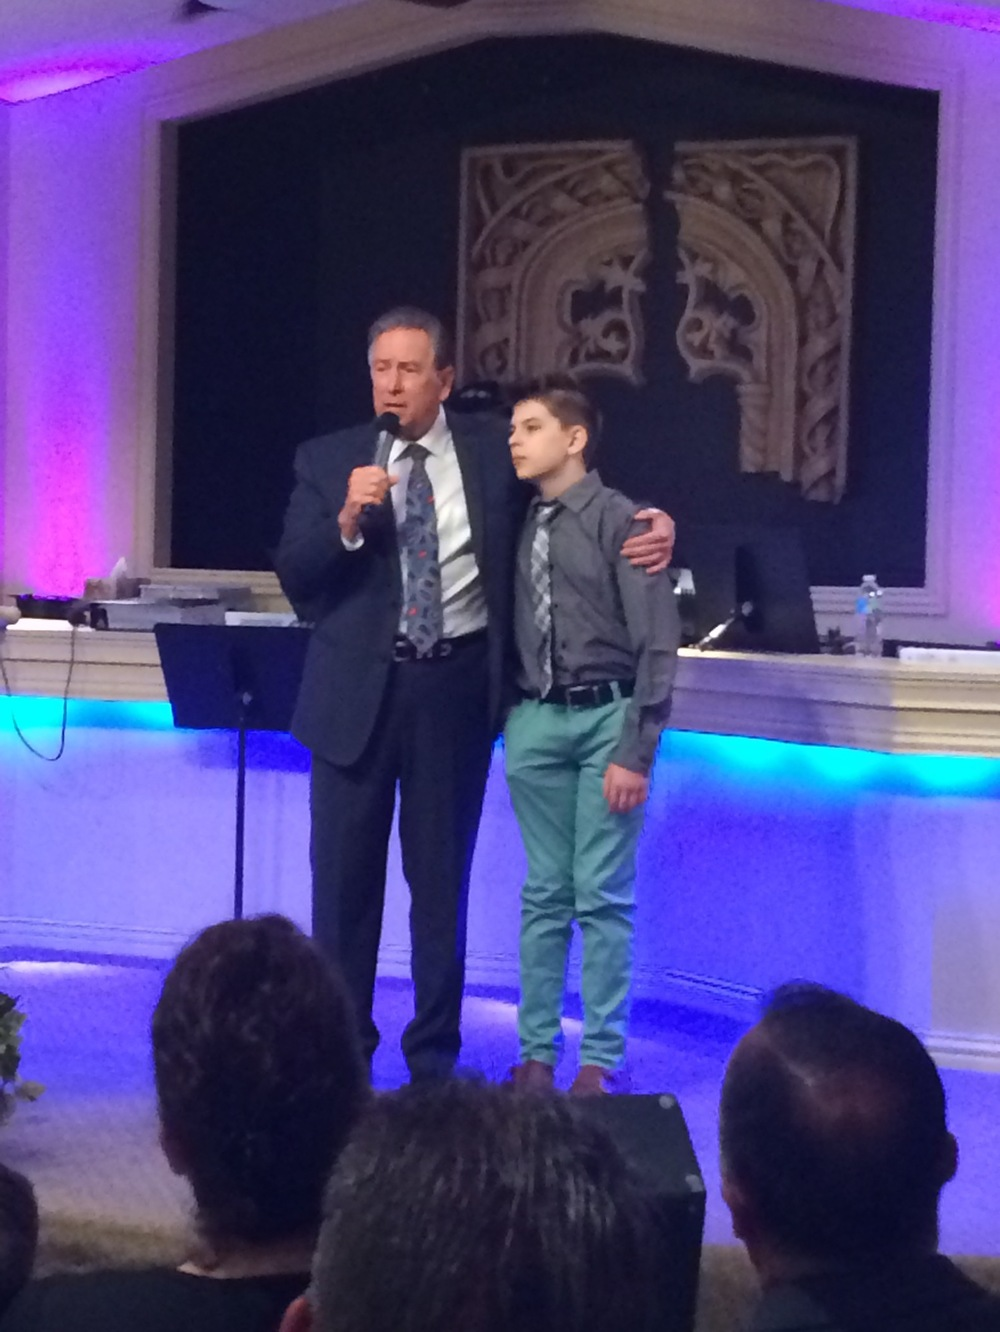 Winslow with his grandchild, Bryce, who was healed in 2013 at Victory Life Church Denton, Texas